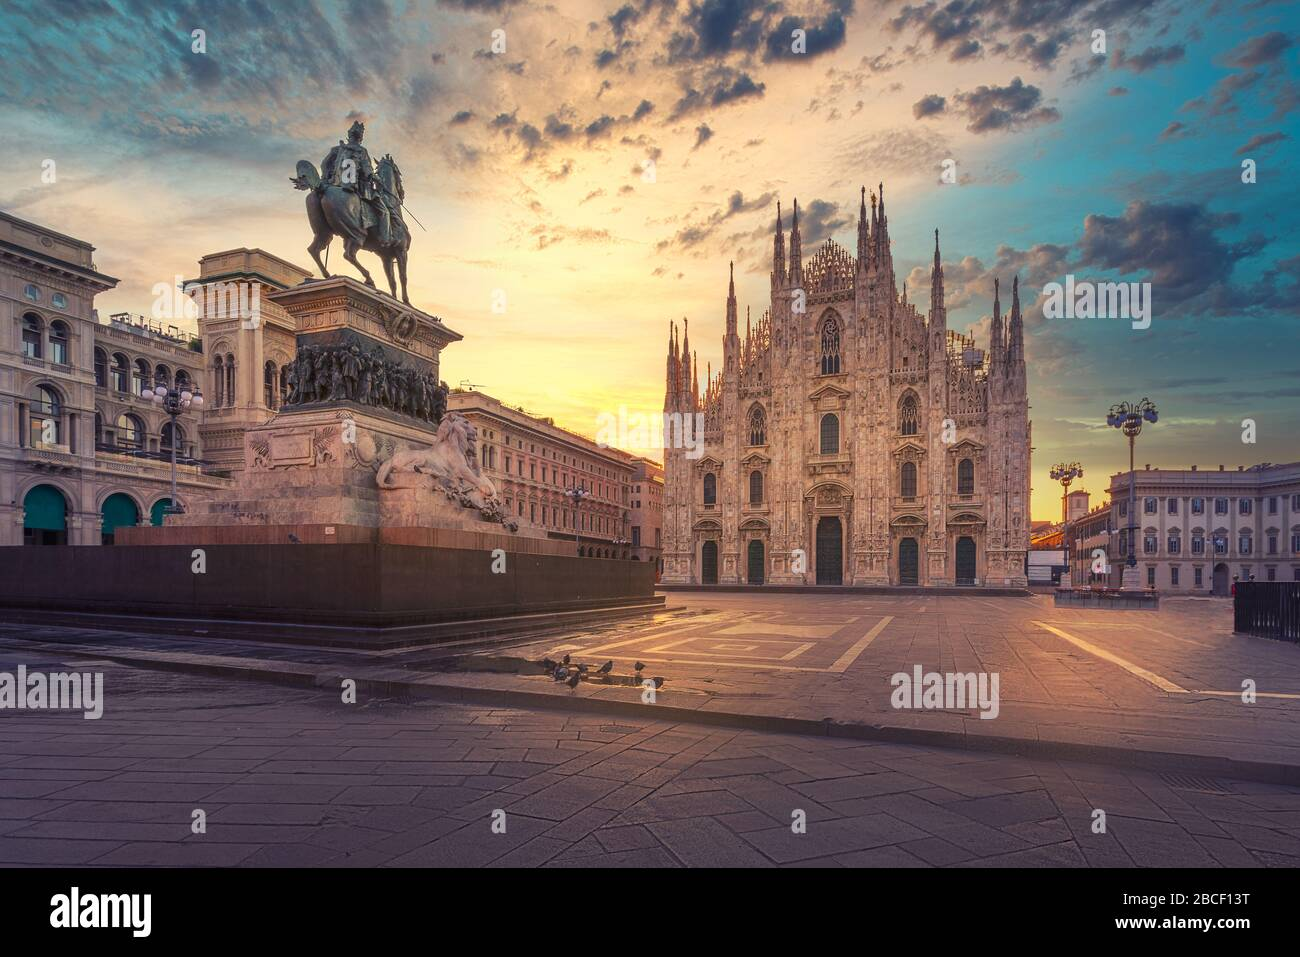 Duomo , Milan gothic cathedral at sunrise,Italy,Europe.Horizontal photo with copy-space. Stock Photo